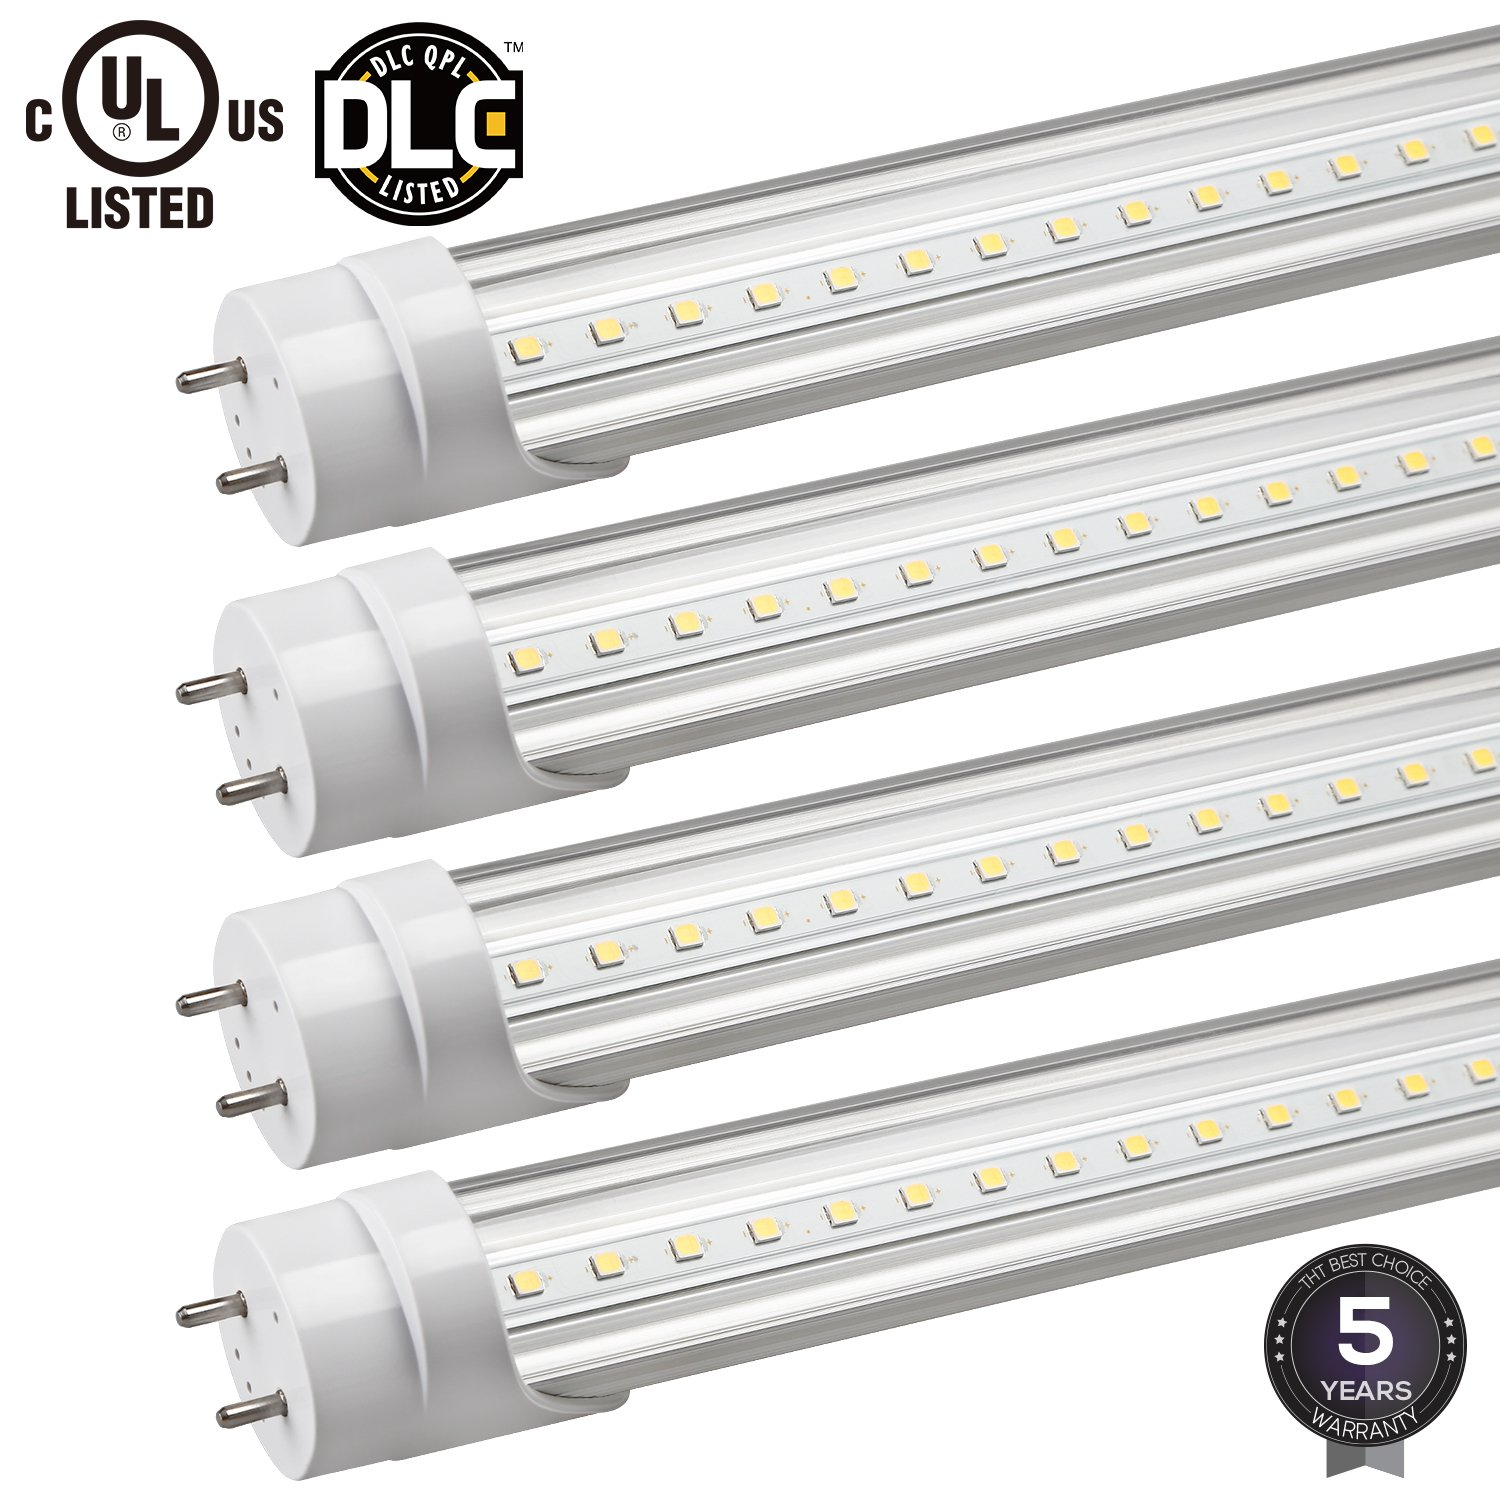 4 Pack Hybrid T8 4ft 18w 40w Equiv Led Shop Light Electronic Choke Circuit Diagram For Tube 2300lm Ballast Friendly Dual End Powered 4000k 50000 Hours